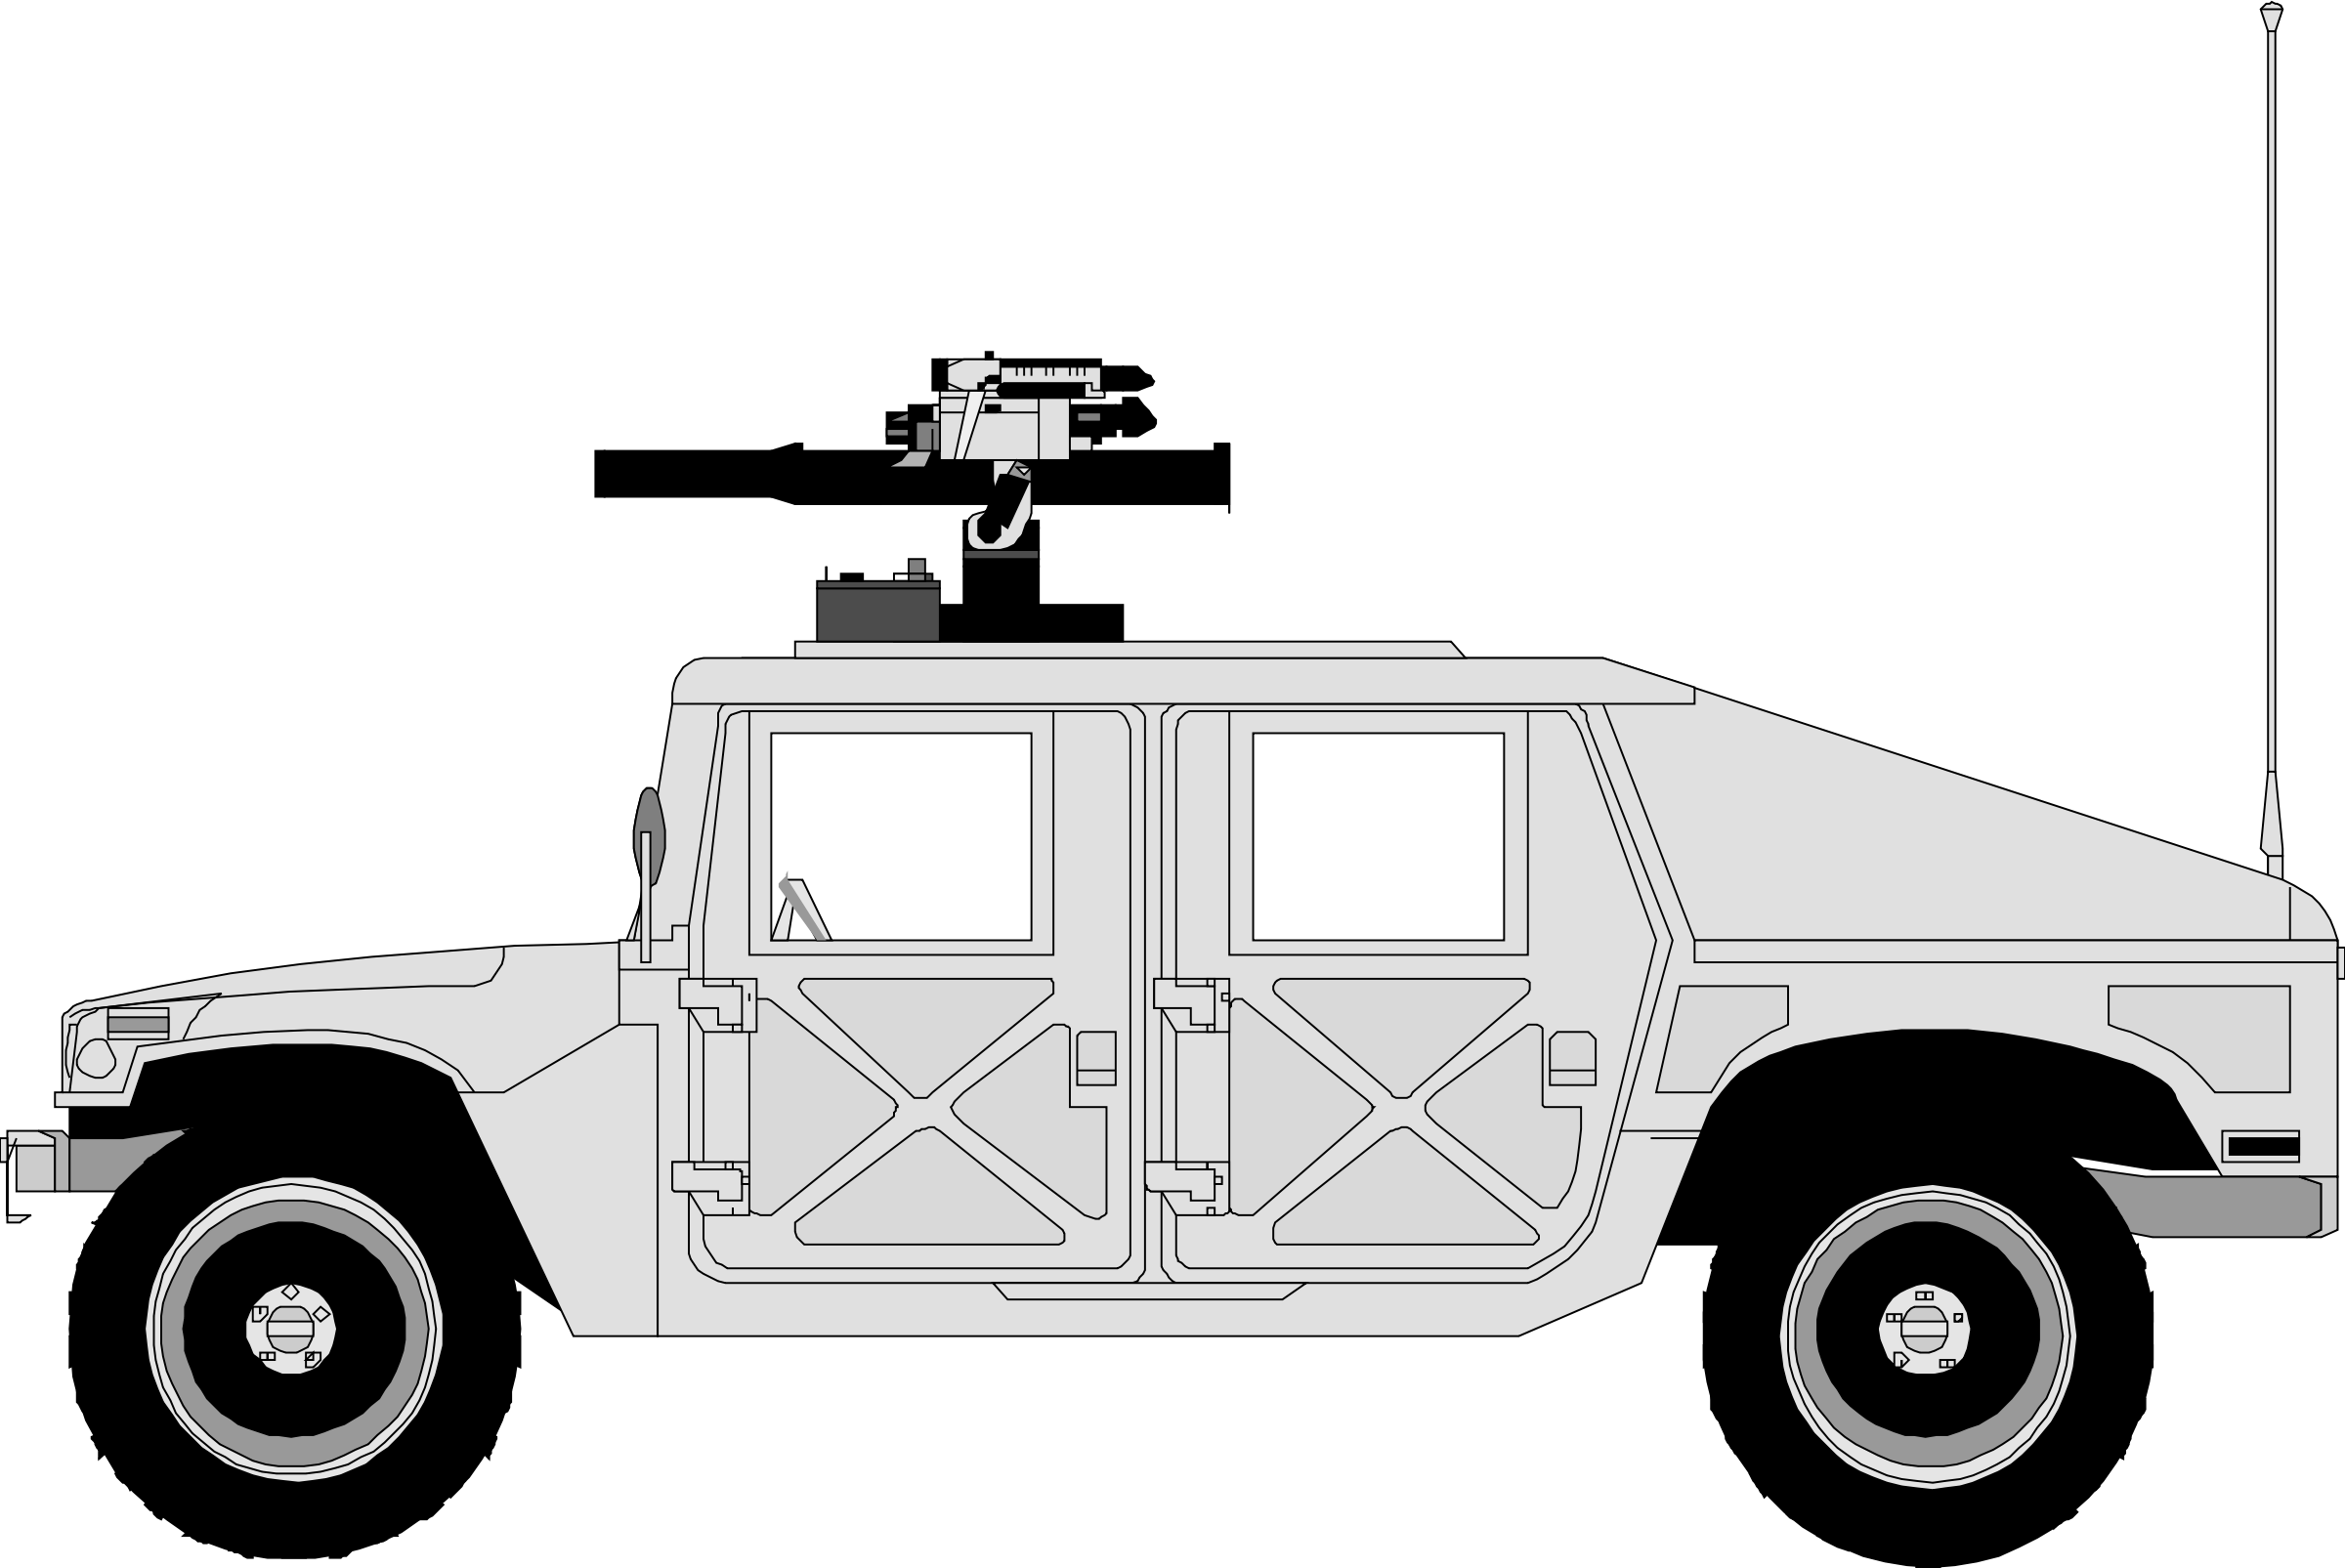 Humvee big image png. Military clipart jeep army